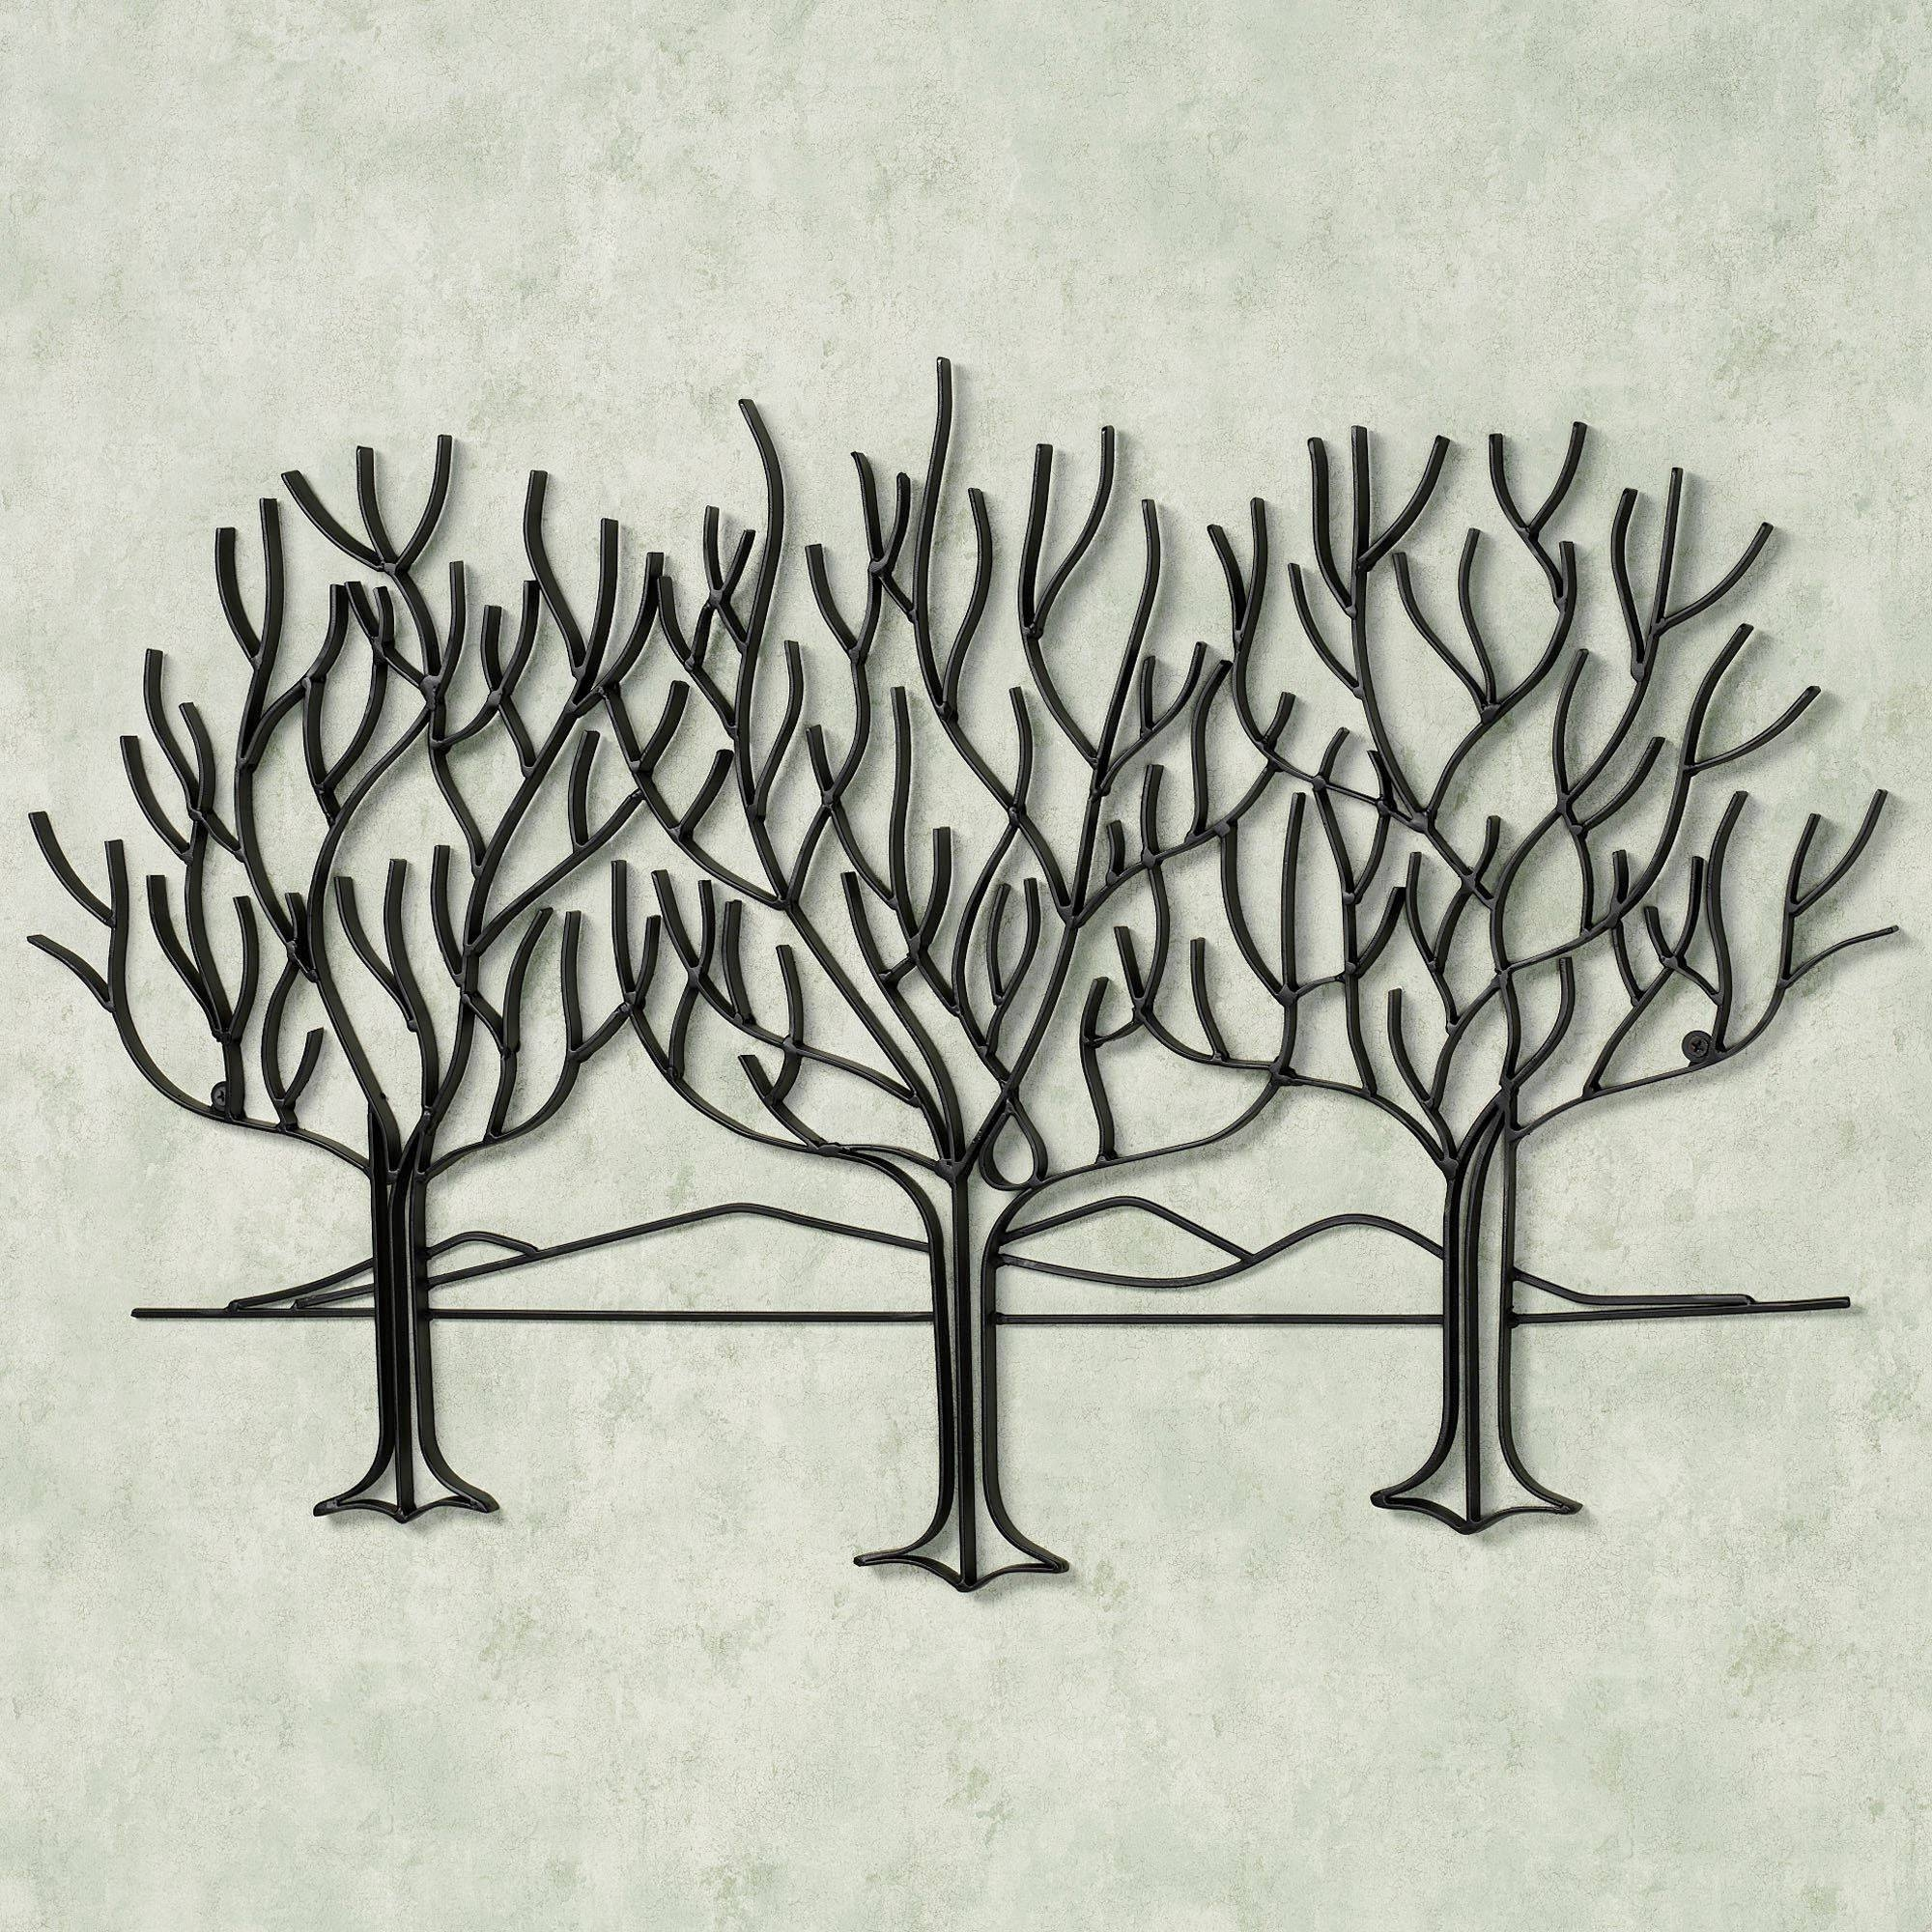 Wall Art Designs: Metal Wall Art Trees Black Metal Wall Art Olive Pertaining To Current Metal Wall Art Tree (View 20 of 20)